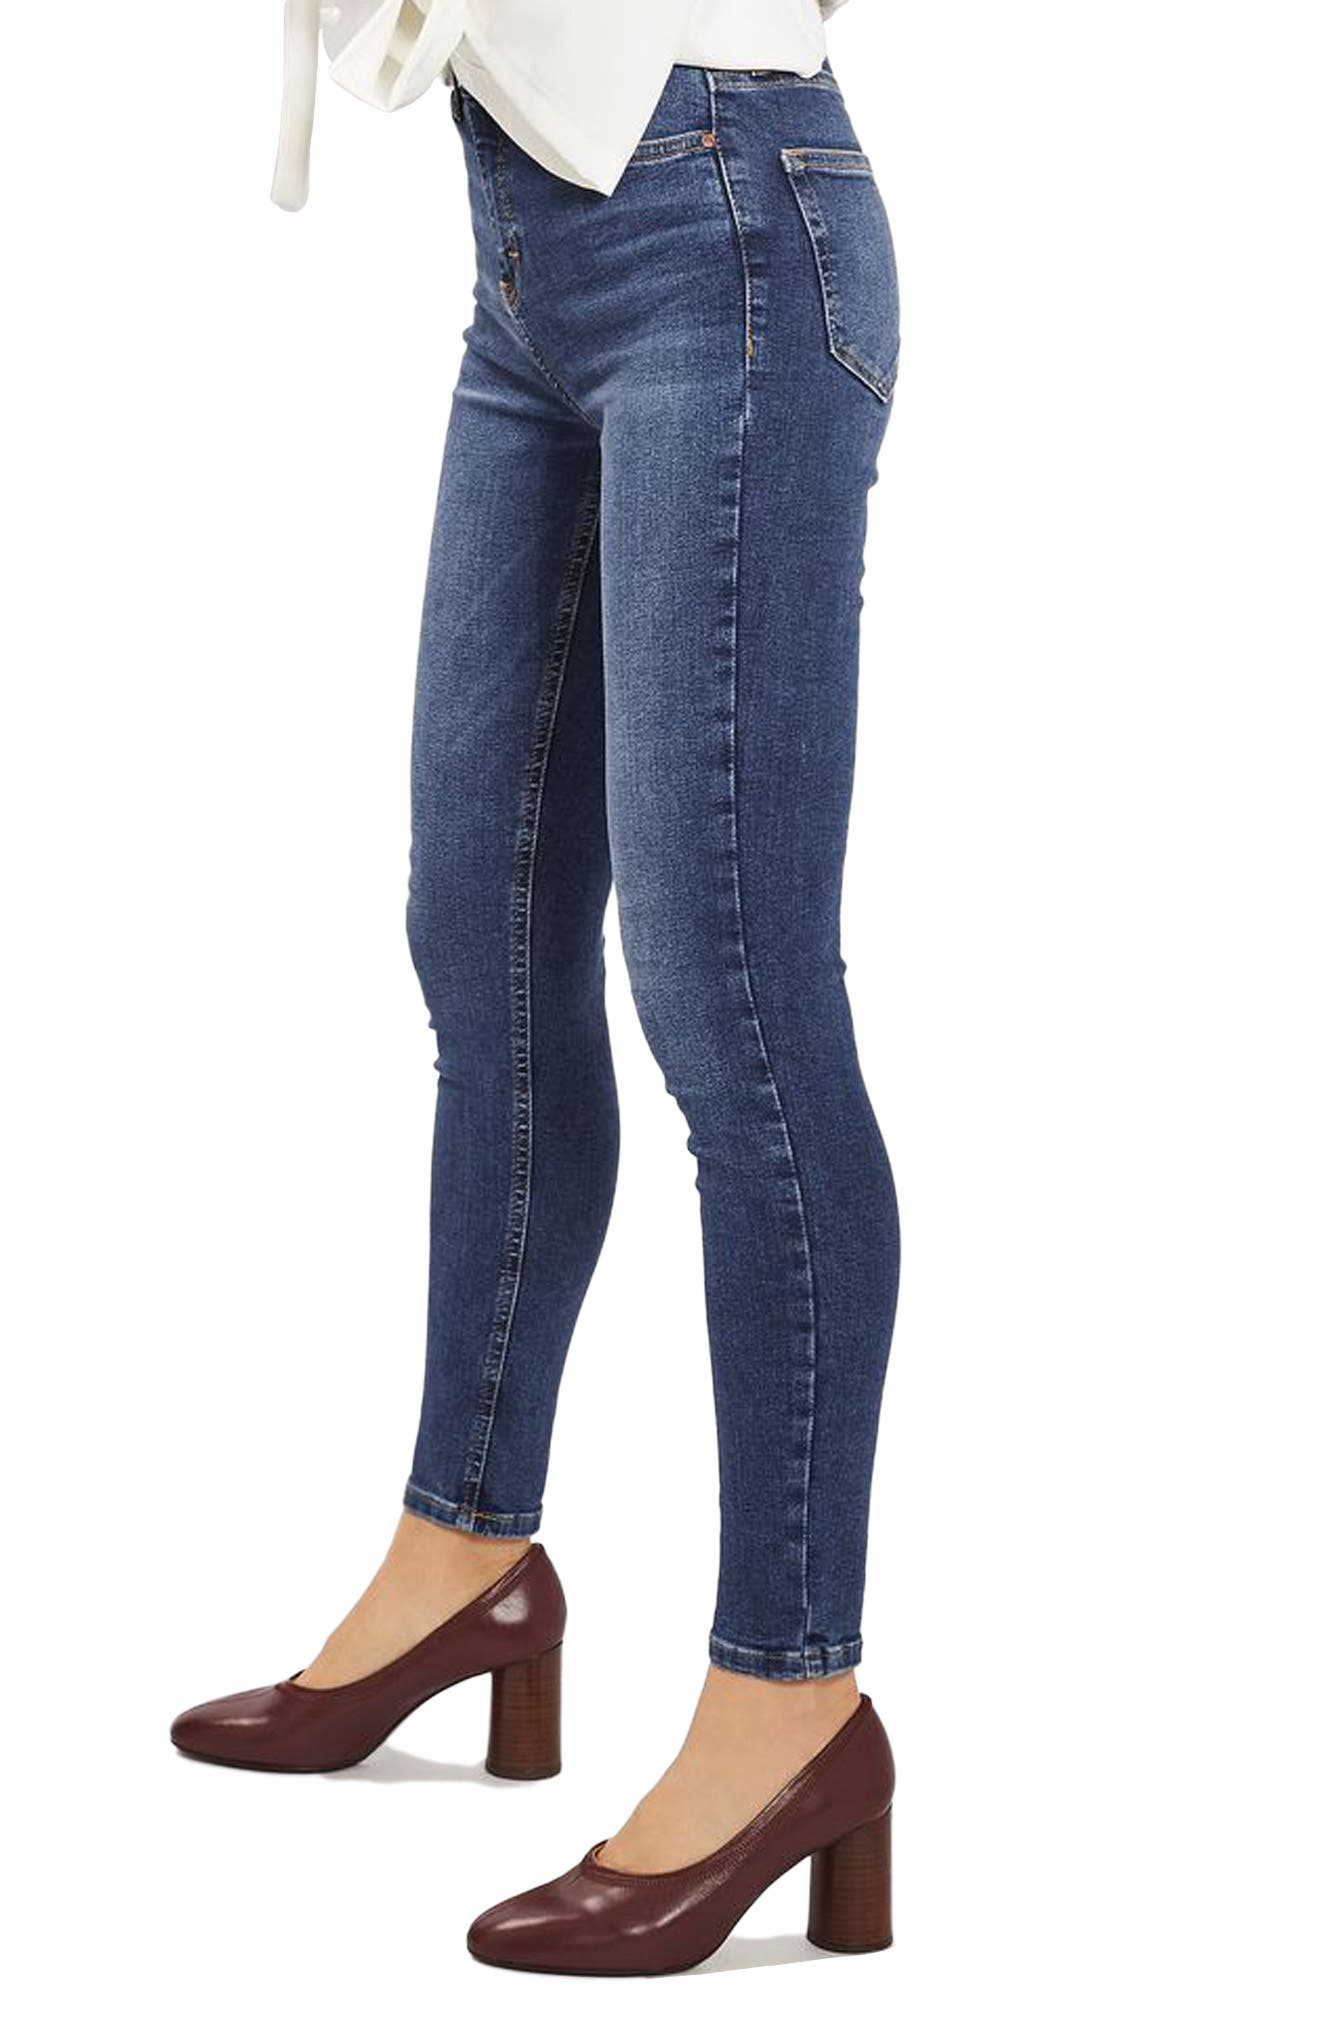 Jamie Indigo High Waist Skinny Jeans,                         Main,                         color, Indigo